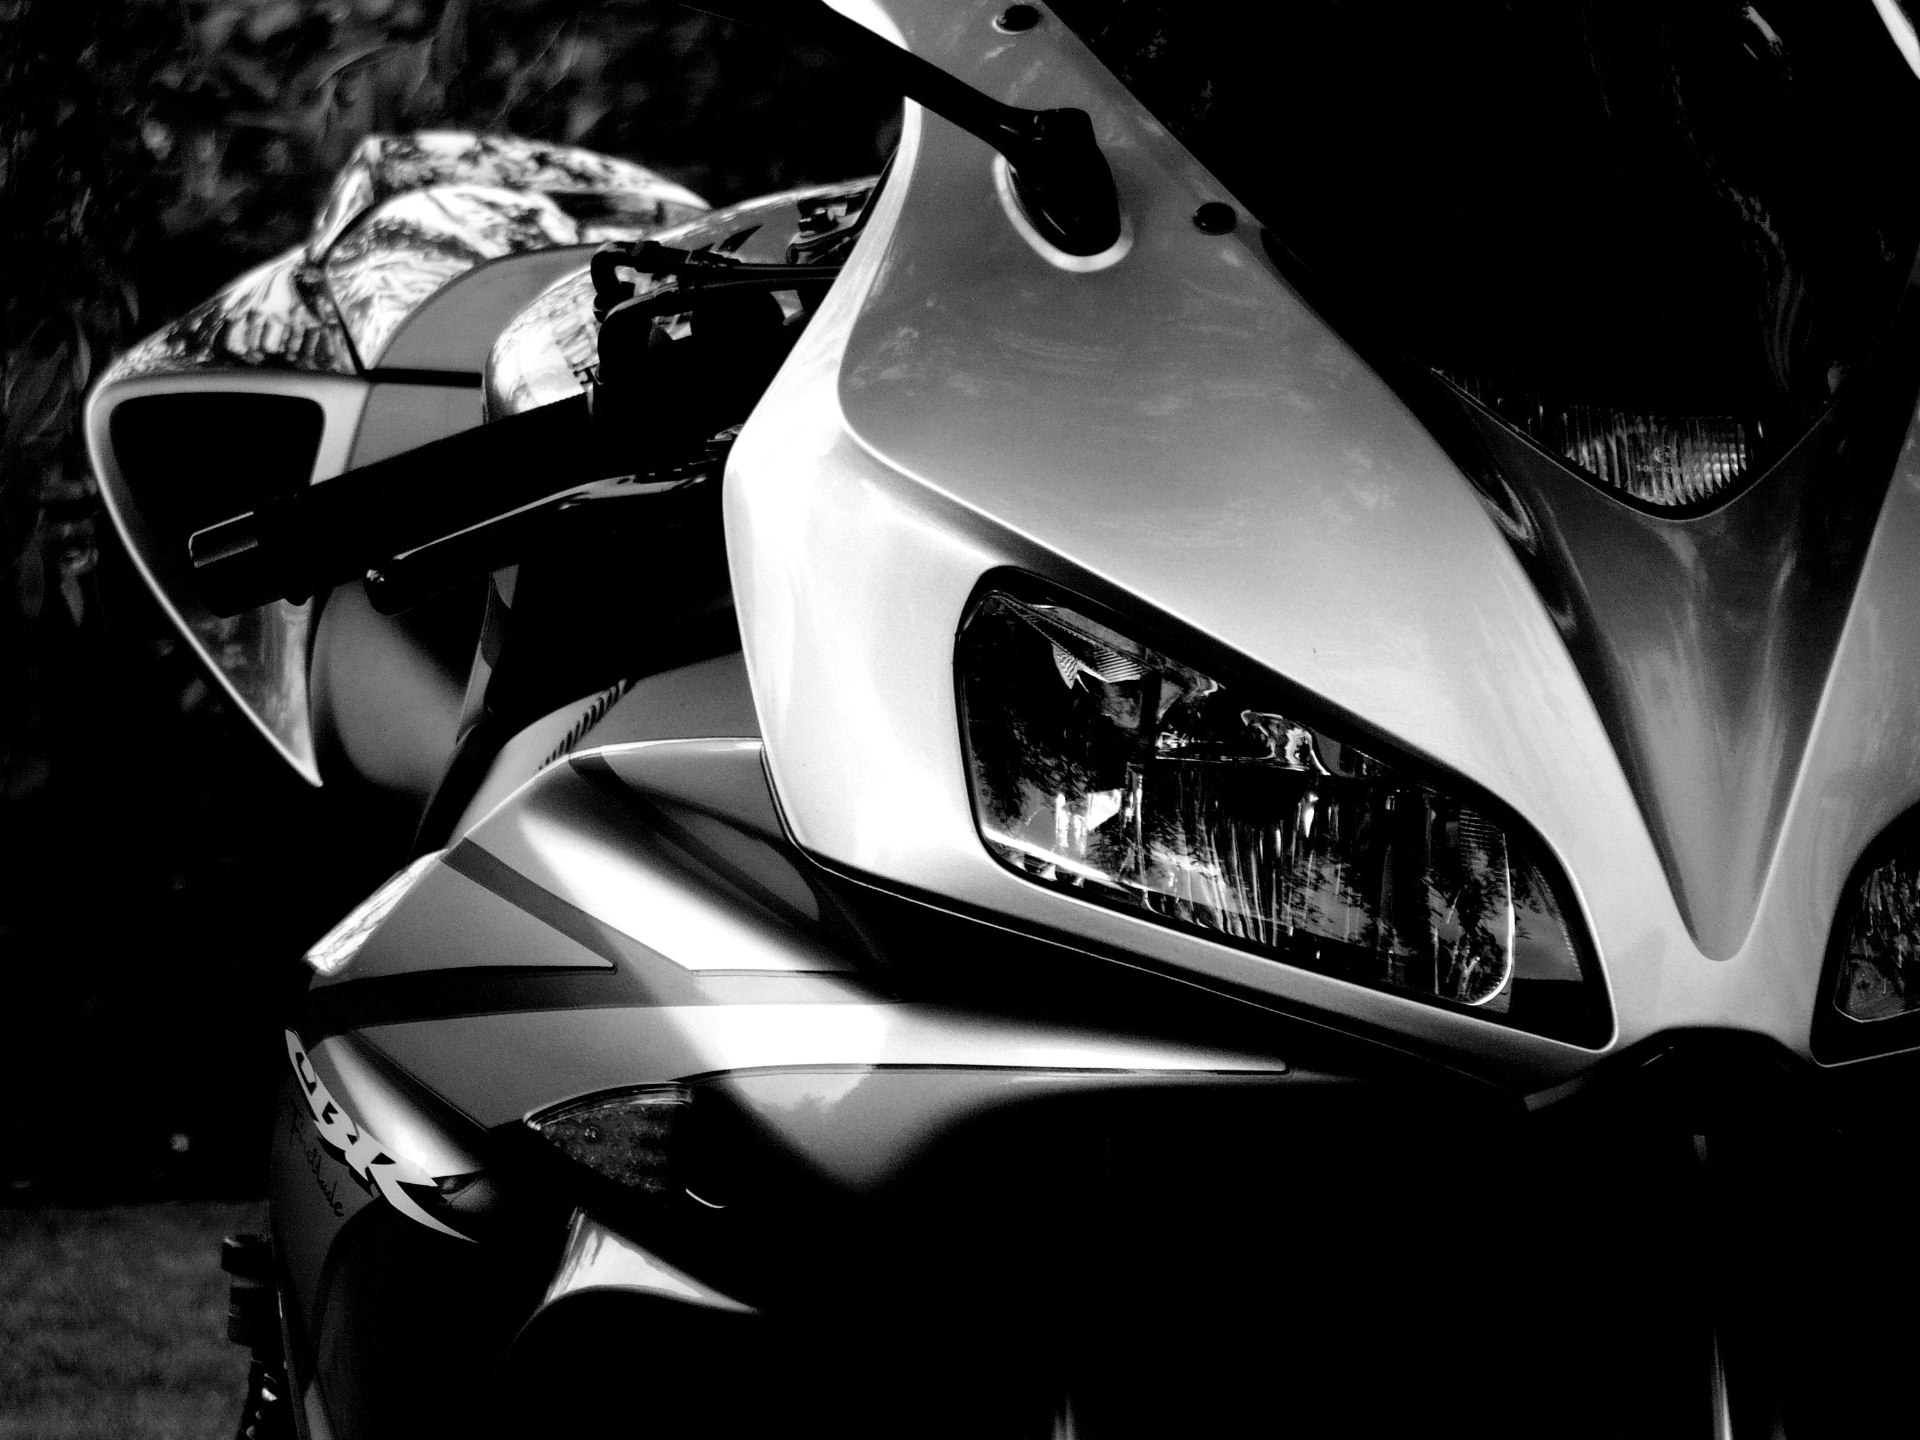 Honda Cbr1000rr Wallpaper Wallpapersafari